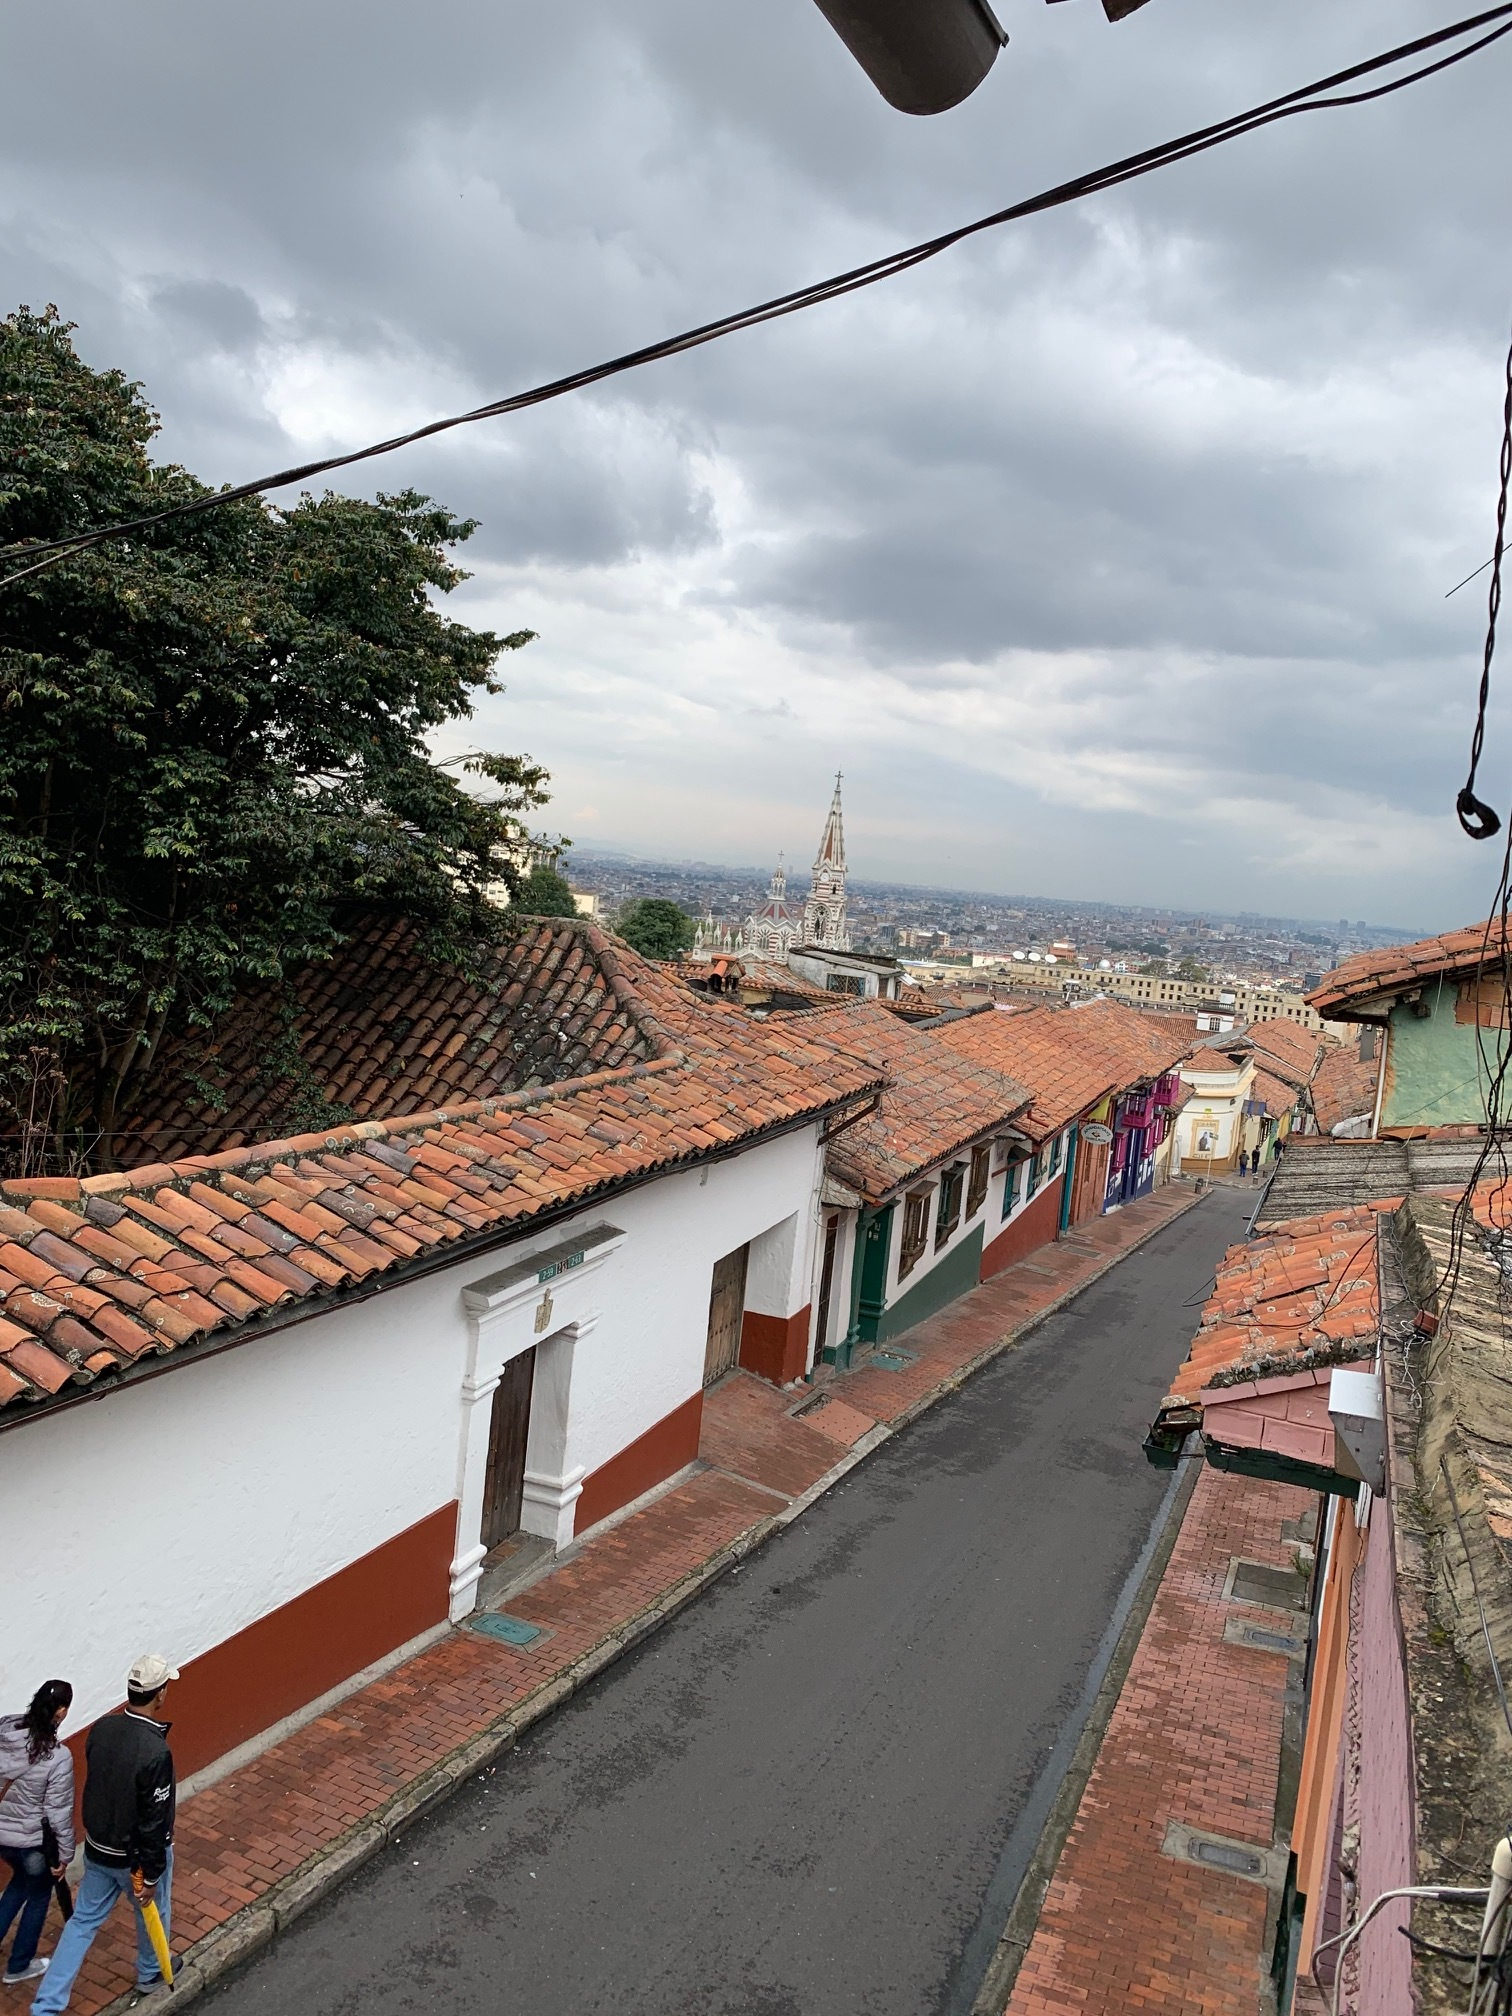 The view from our AirBnb in La Candelaria